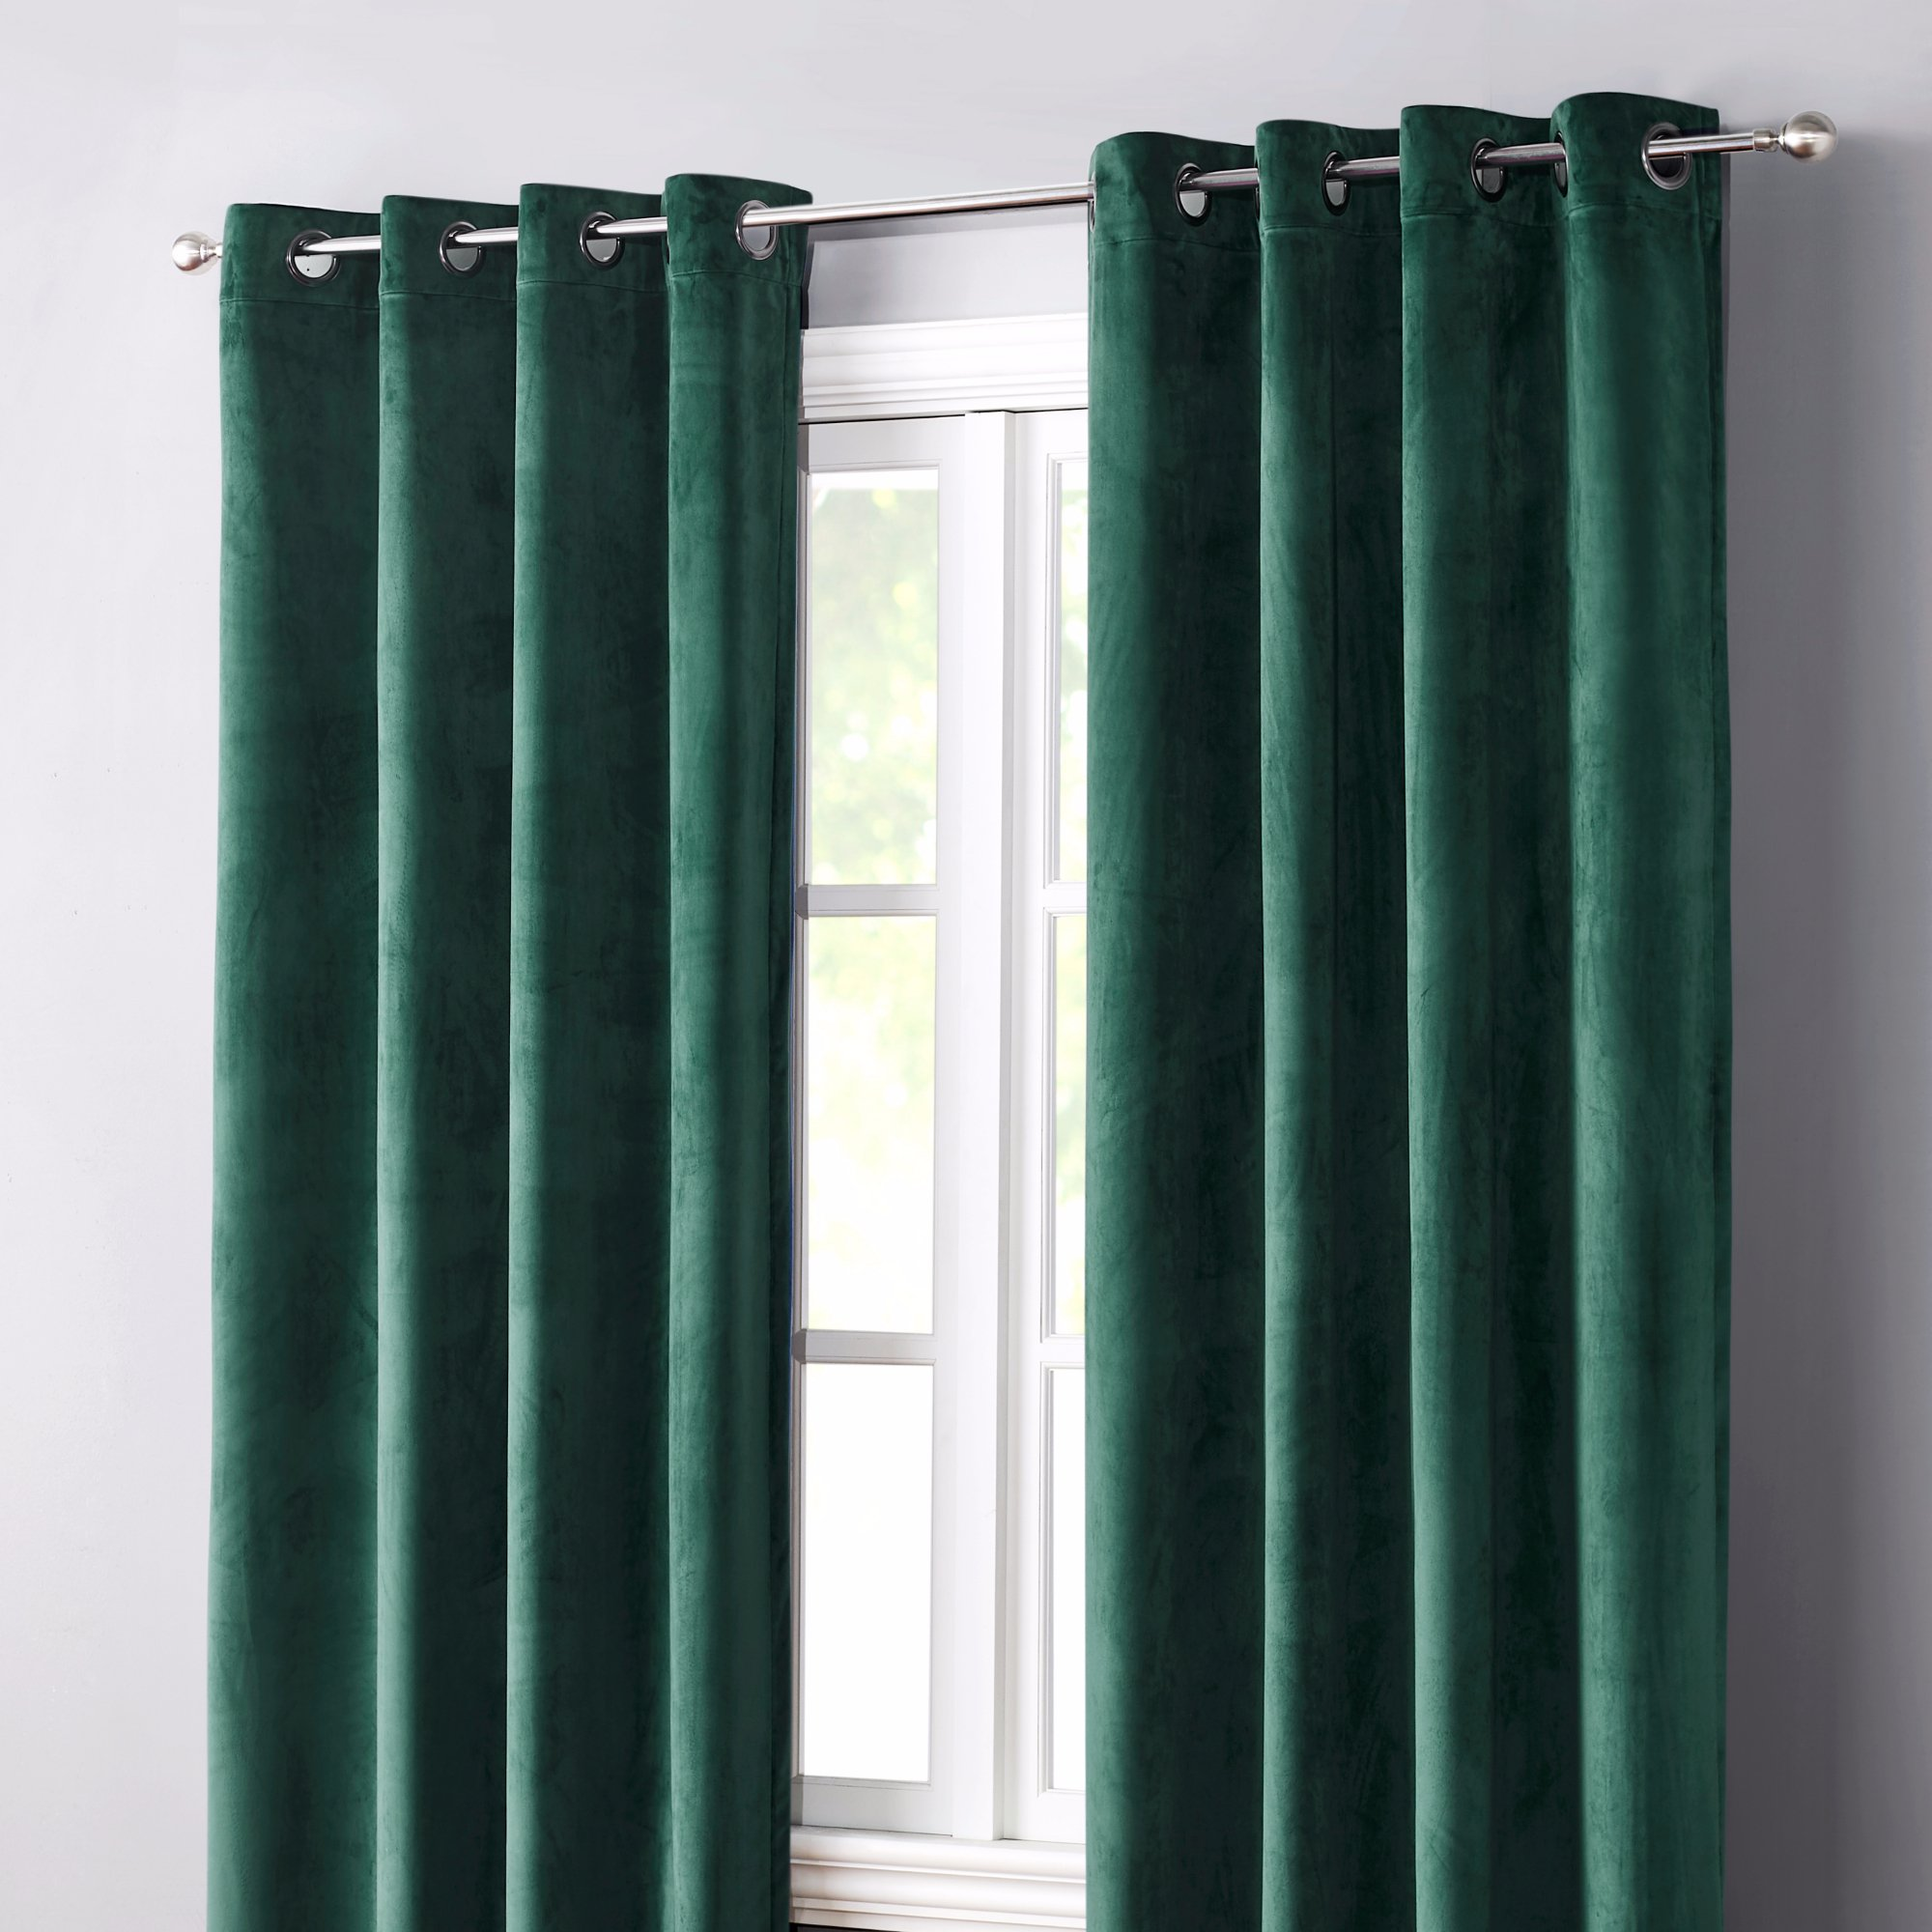 trevi single curtains find treatments grey window eclipse panel grommet brand curtain home and hardware classic x garden